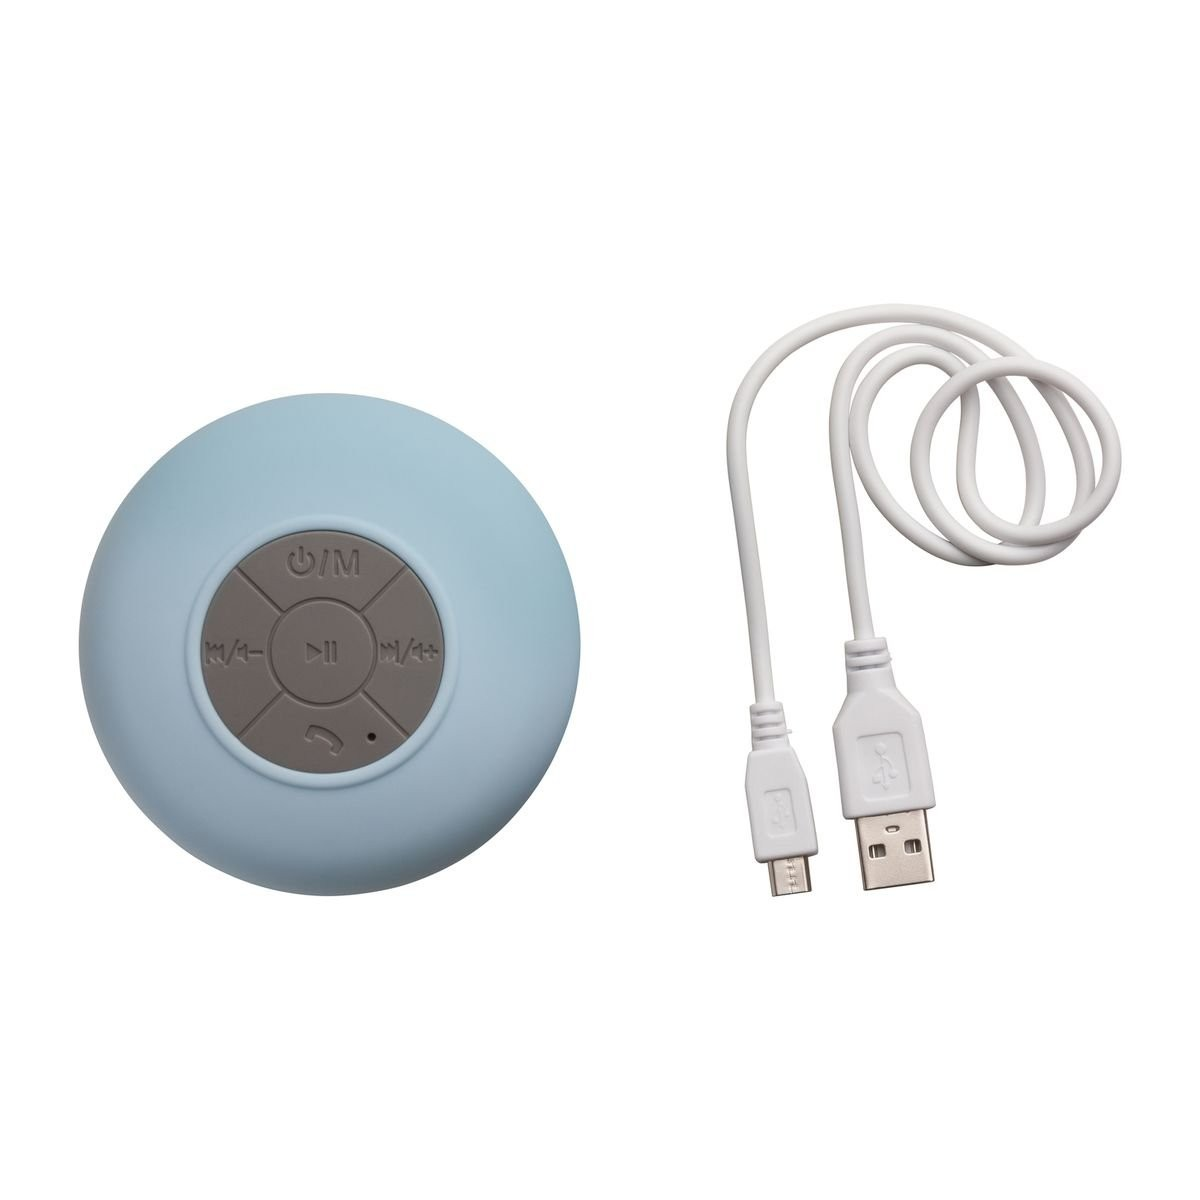 Bluetooth® Duschlautsprecher mit Radio REFLECTS-AVIGNON LIGHT BLUE, Ansicht 2